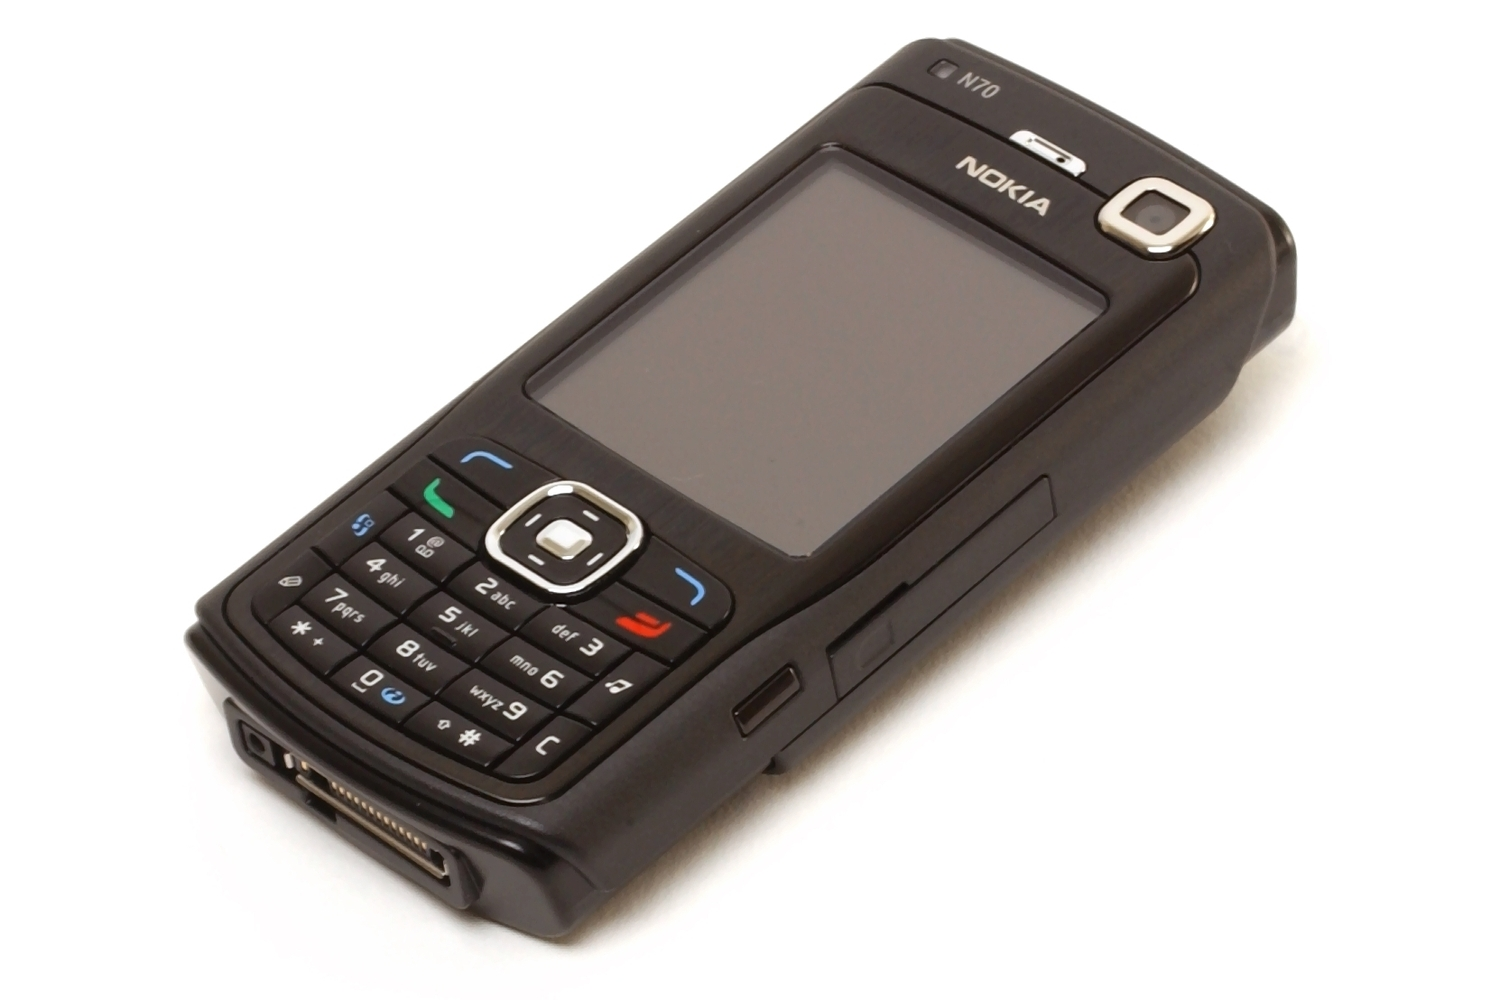 nokia n70 music edition review  - mobile phones